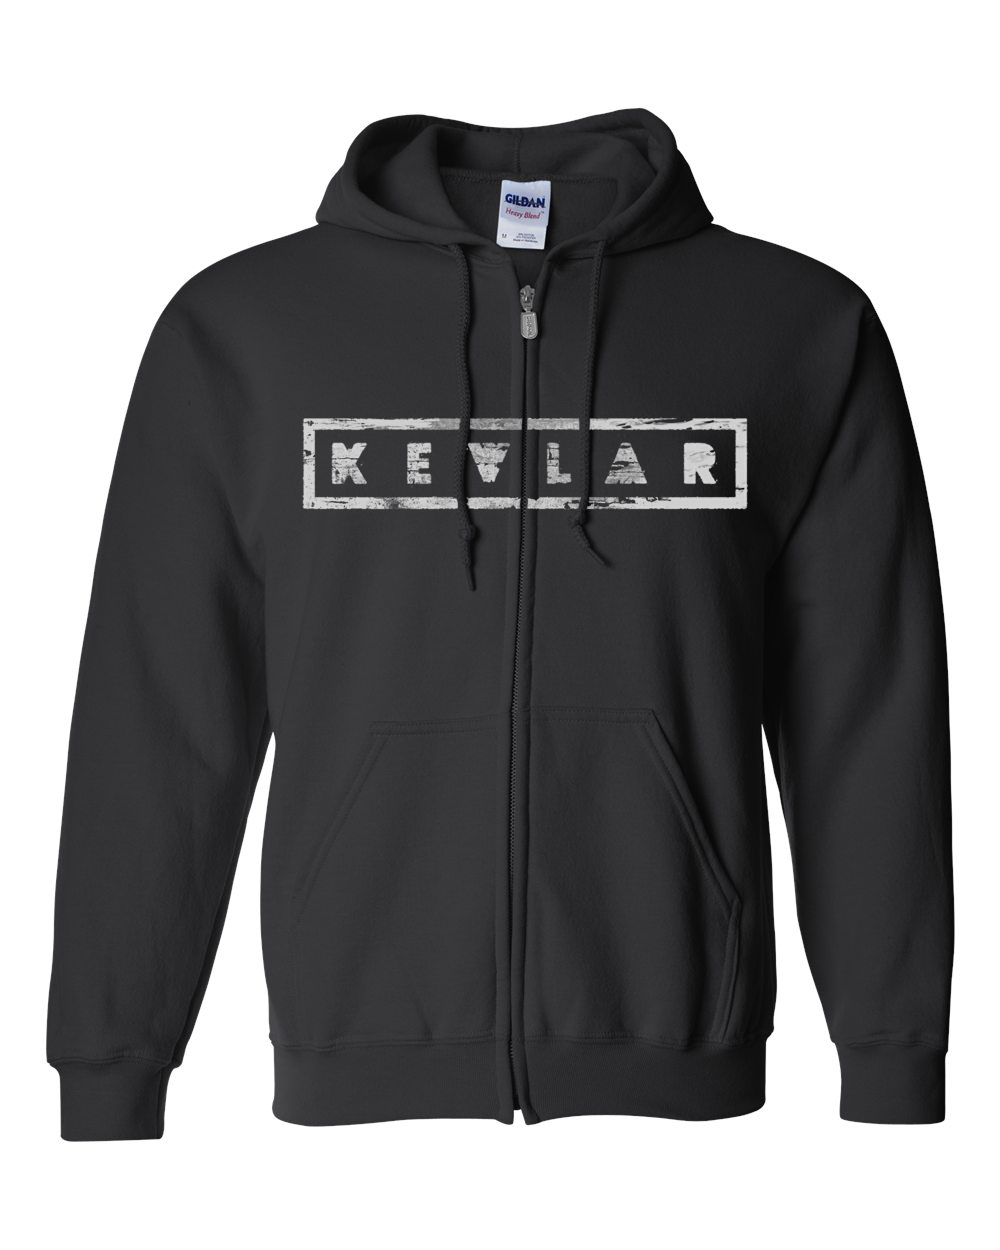 Kevlar : Aftermath Zip-Up